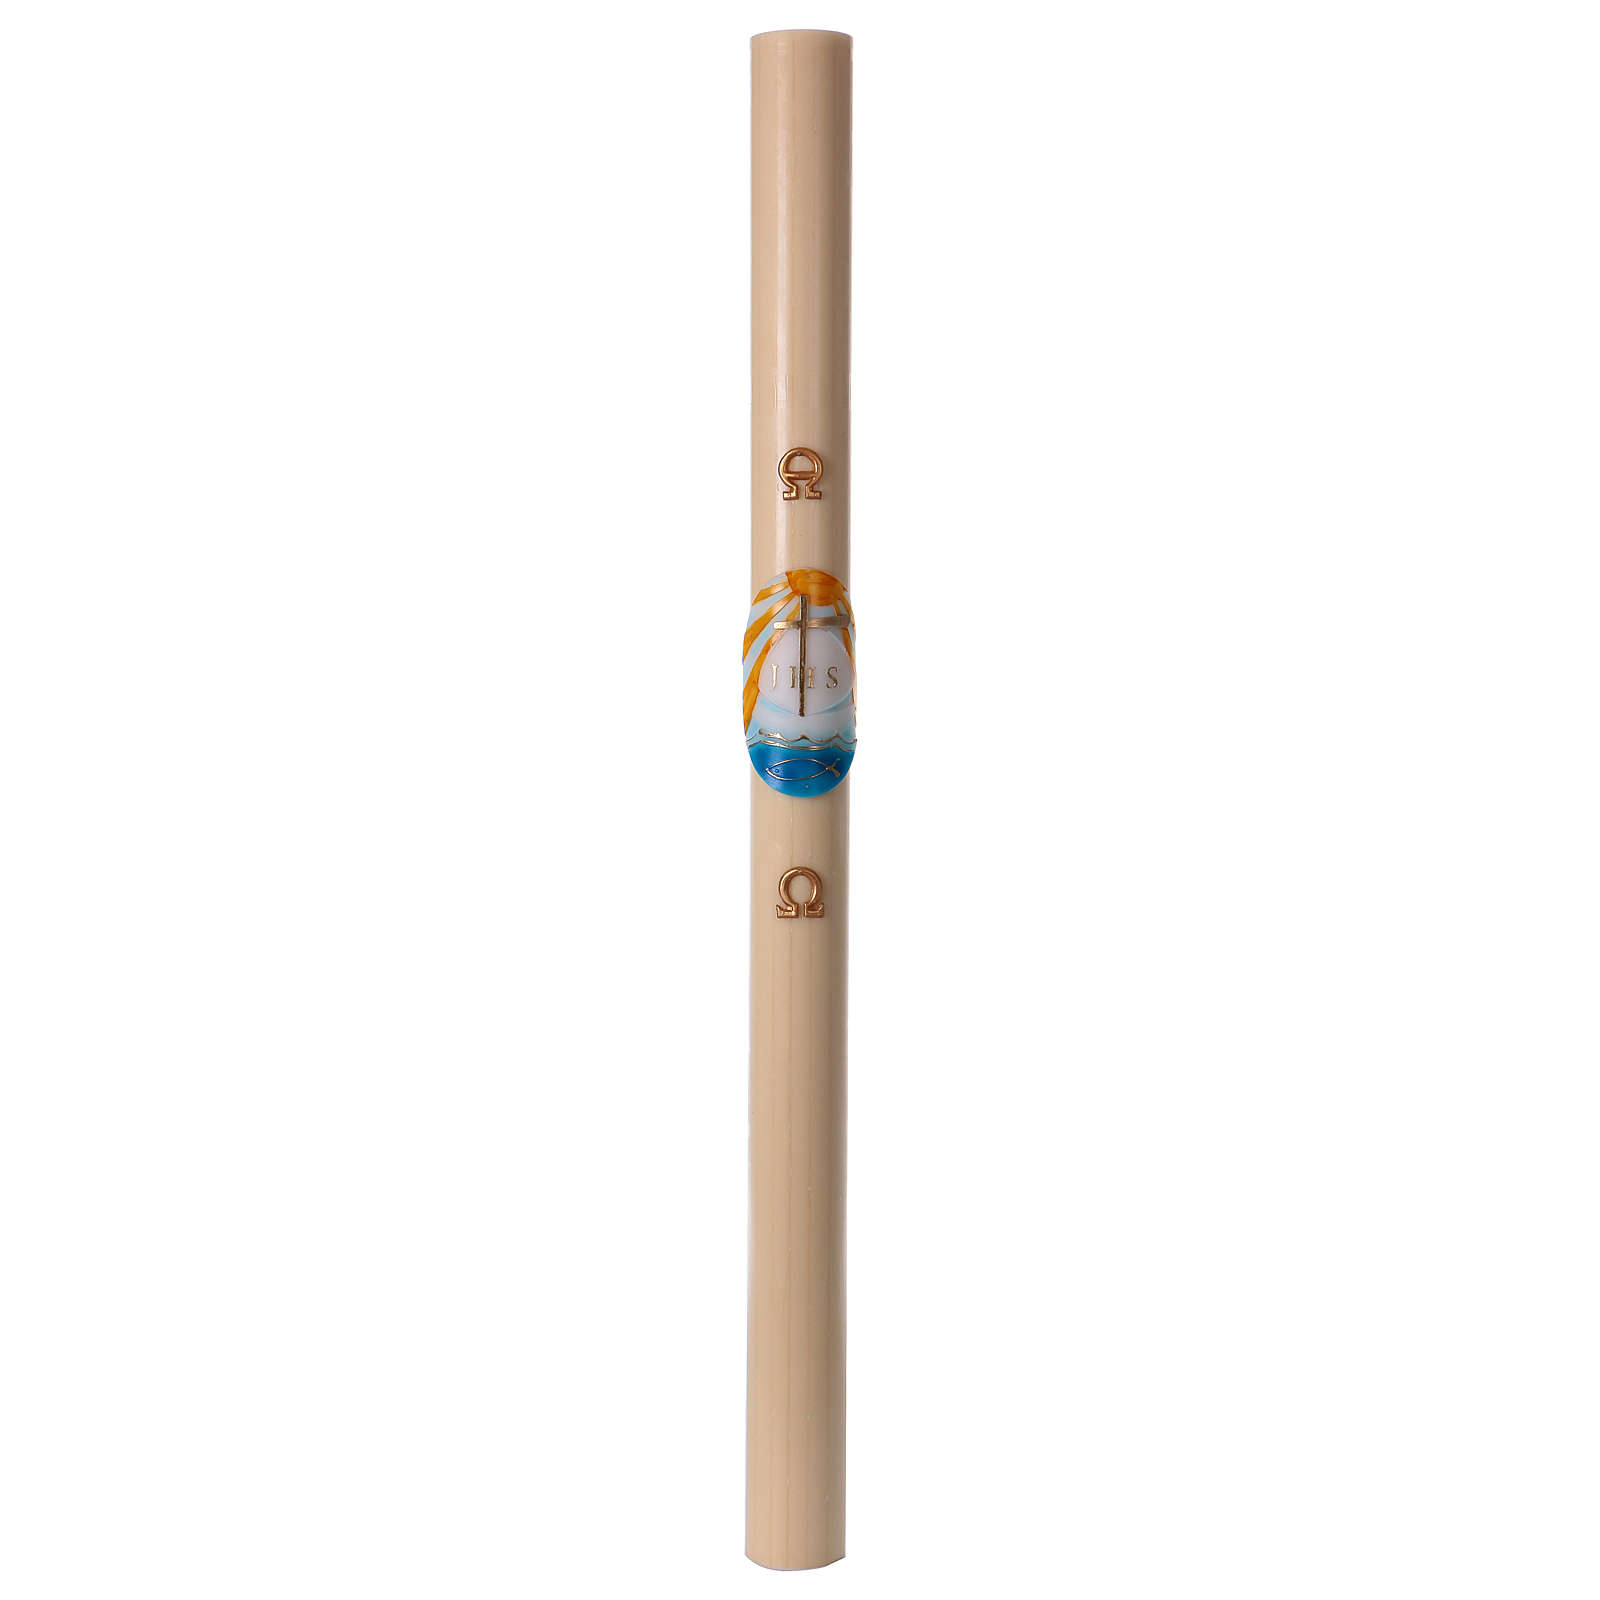 Beeswax Paschal Candle with Colored Boat 8x120 cm WITH REINFORCEMENT 3